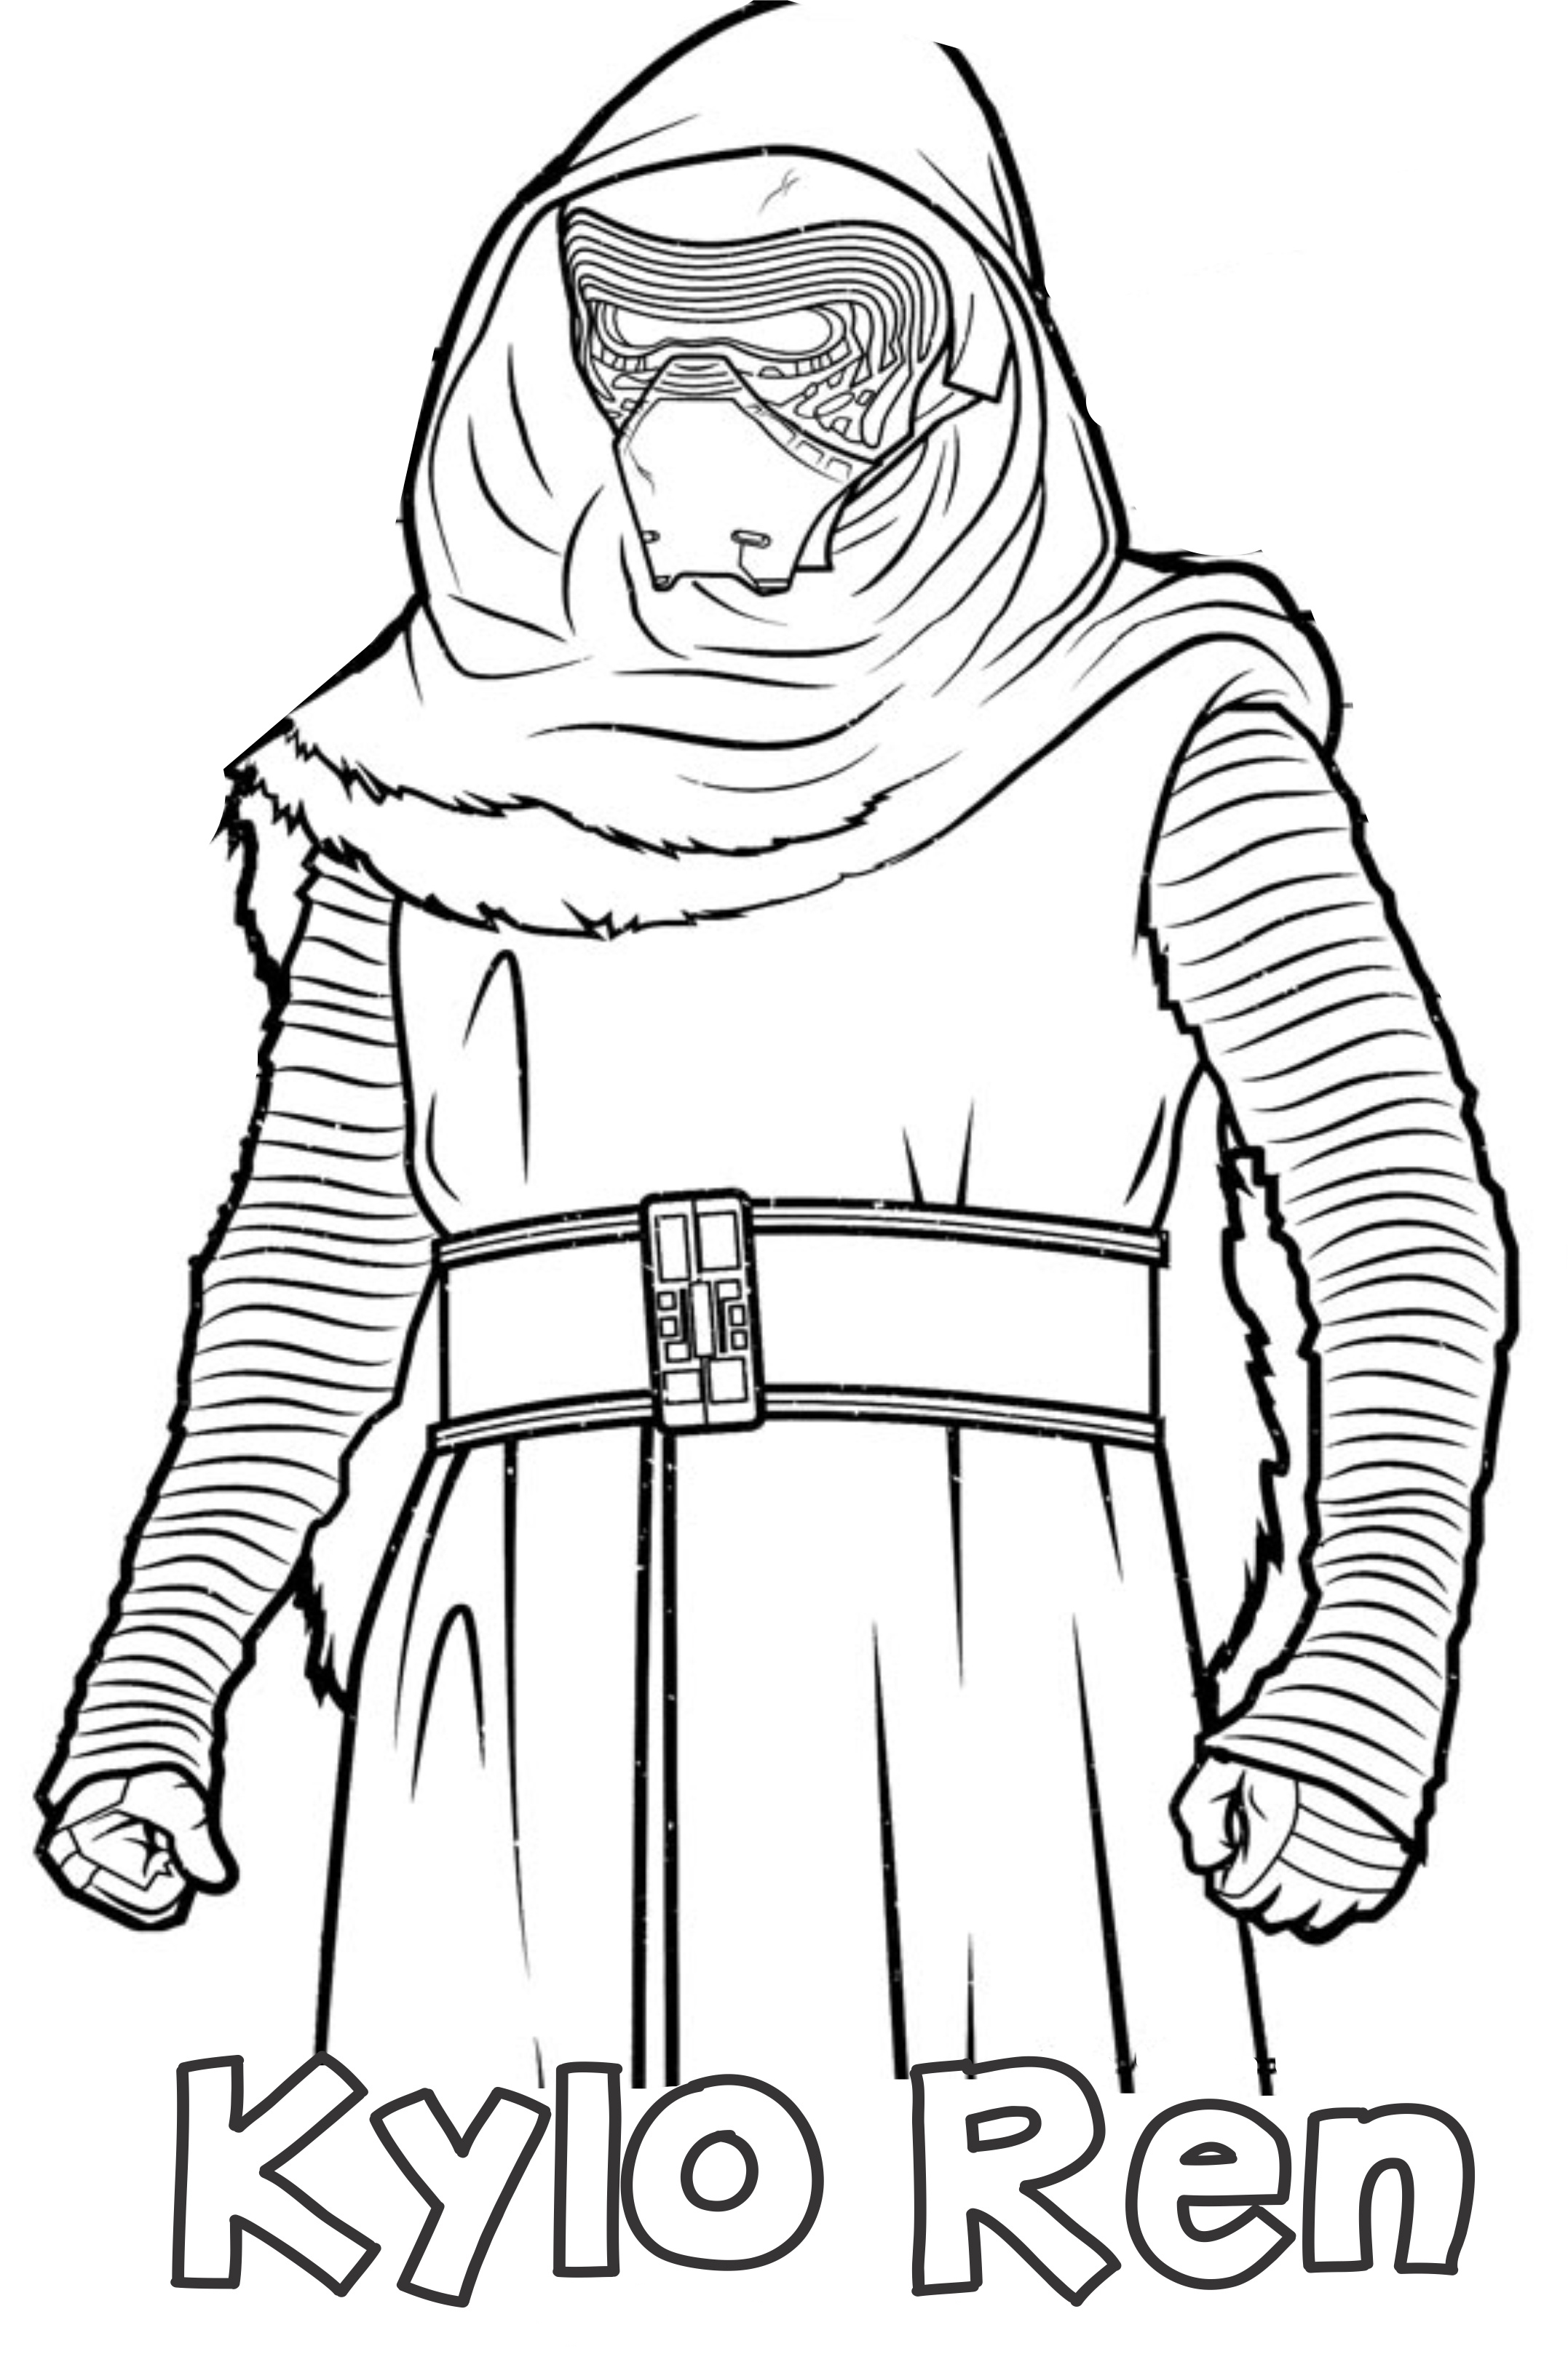 Kylo Ren Coloring Pages - Best Coloring Pages For Kids